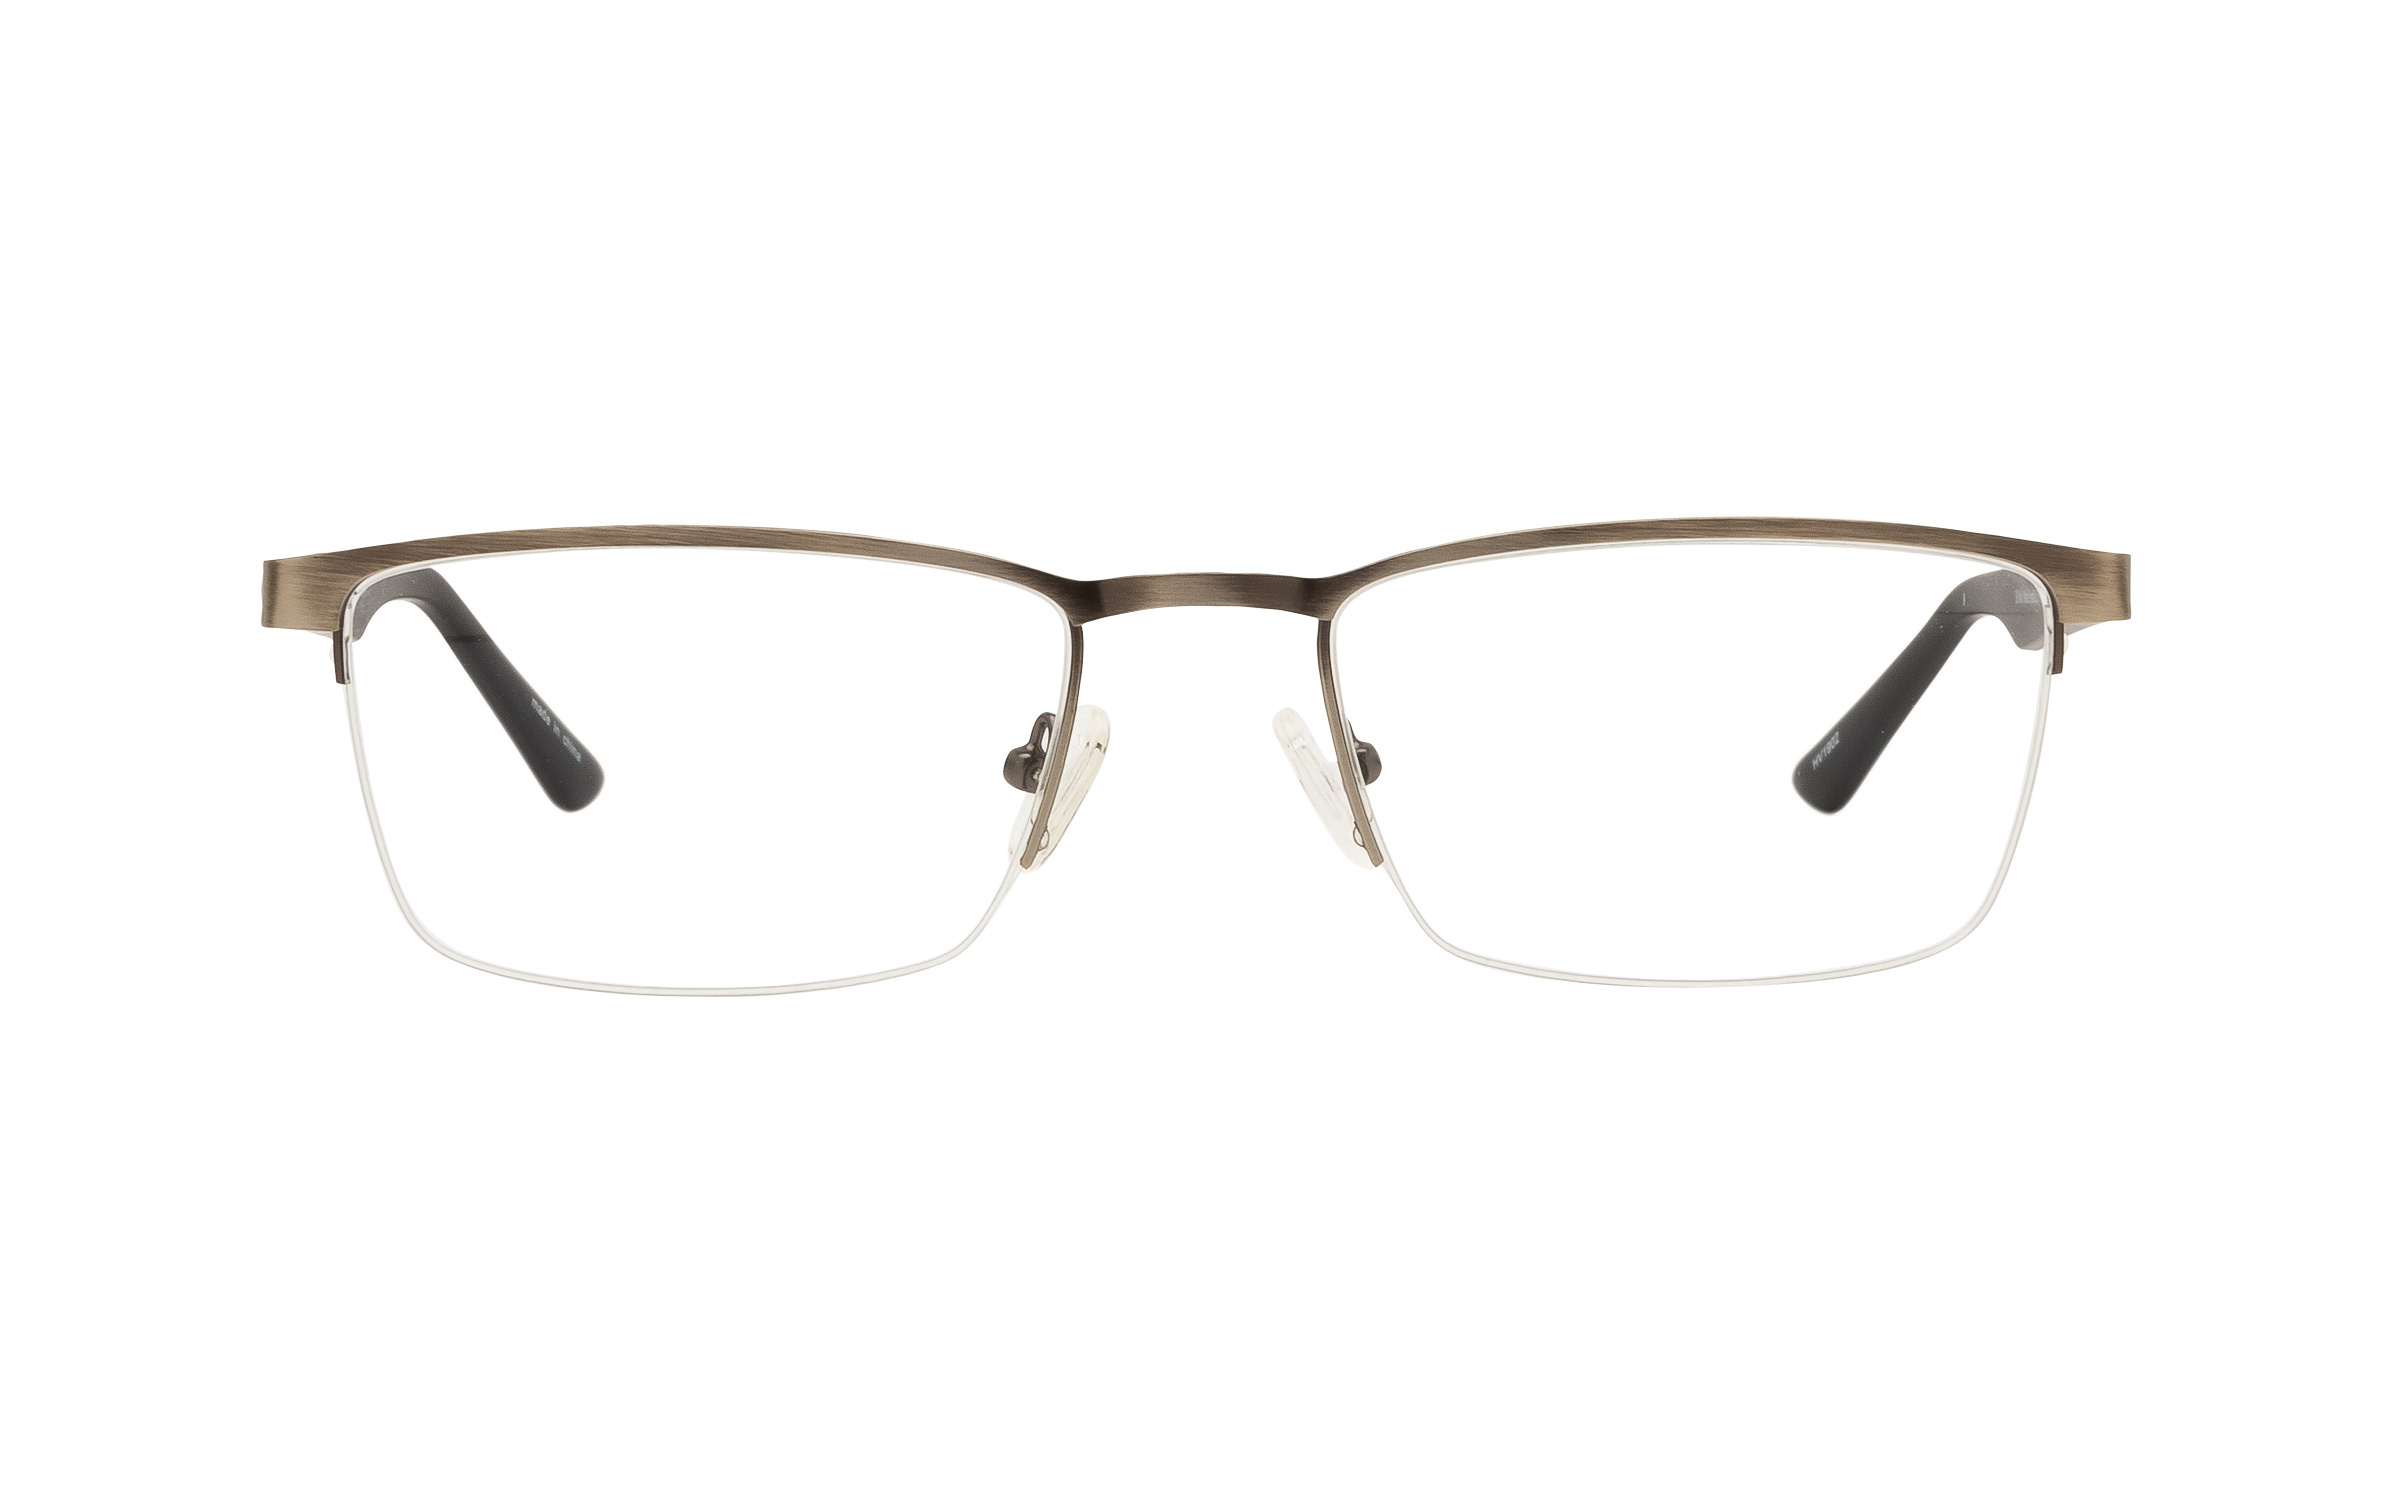 Clearly Basics St. Malo CLS045 C03 (57) Eyeglasses and Frame in Matte Brushed Gun Grey | Acetate/Metal - Online